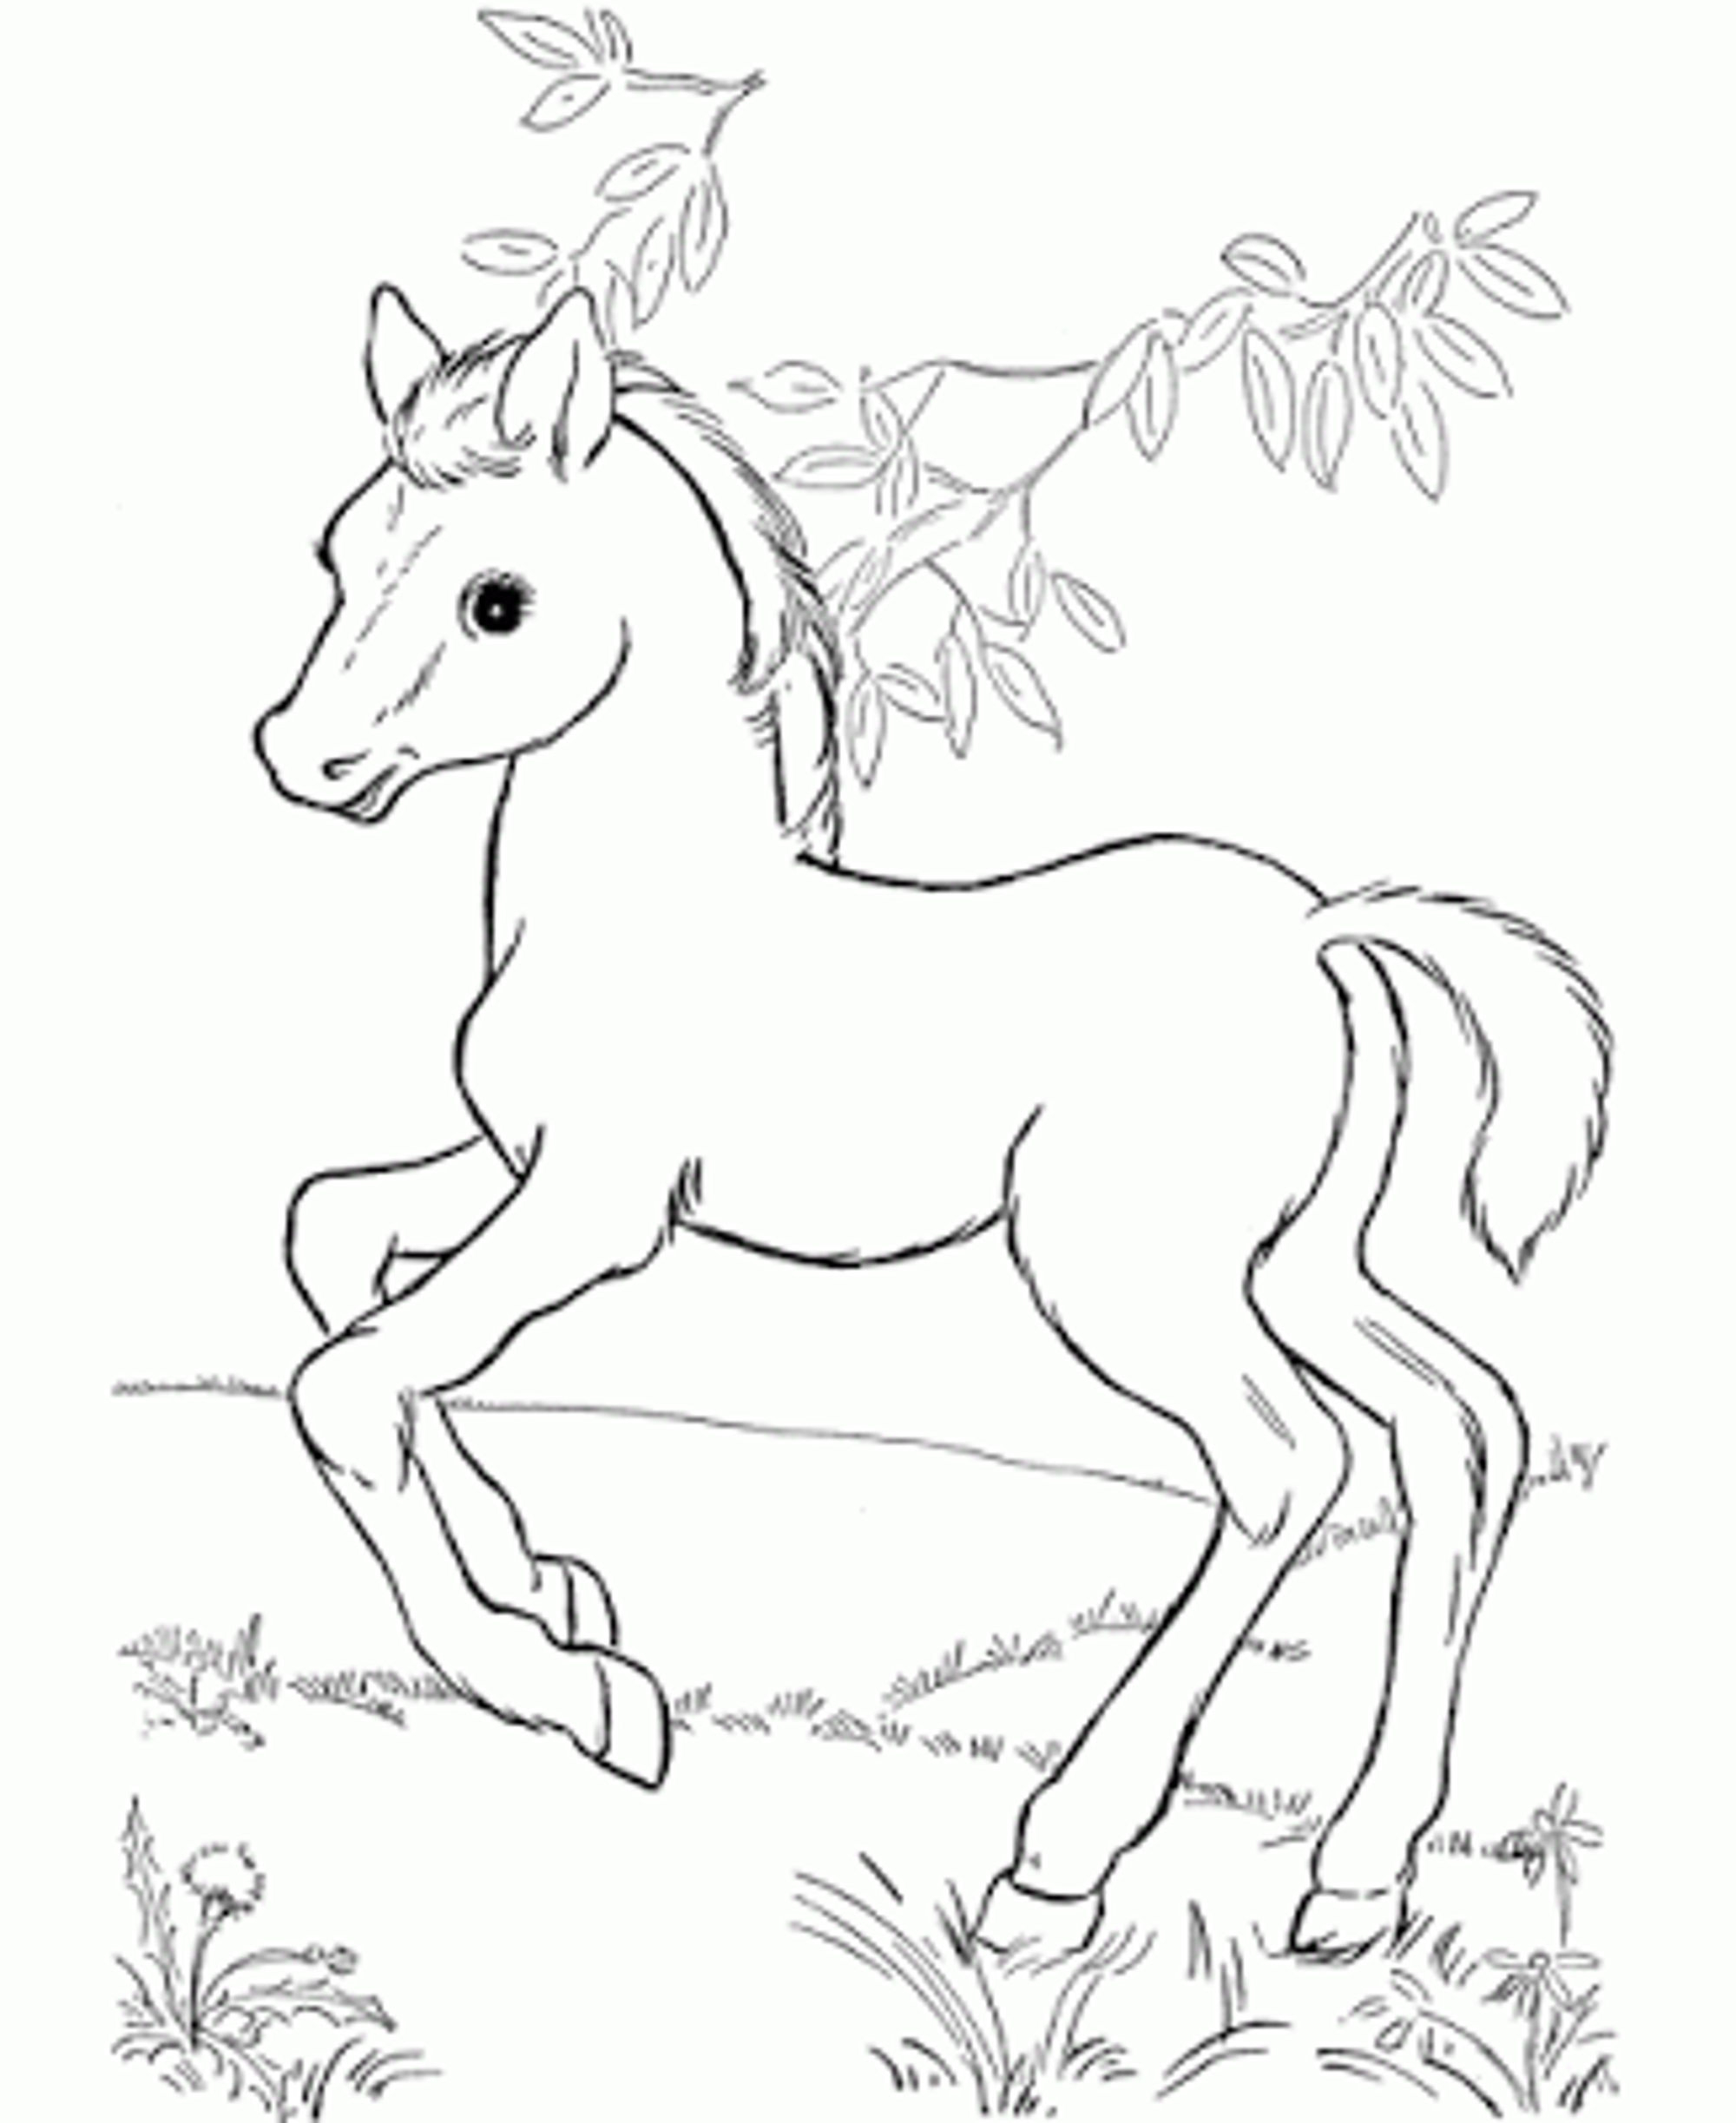 Baby Horses Coloring Pages Horse And Foal Page Free Printable To Print Of Horse  Drawing Kids